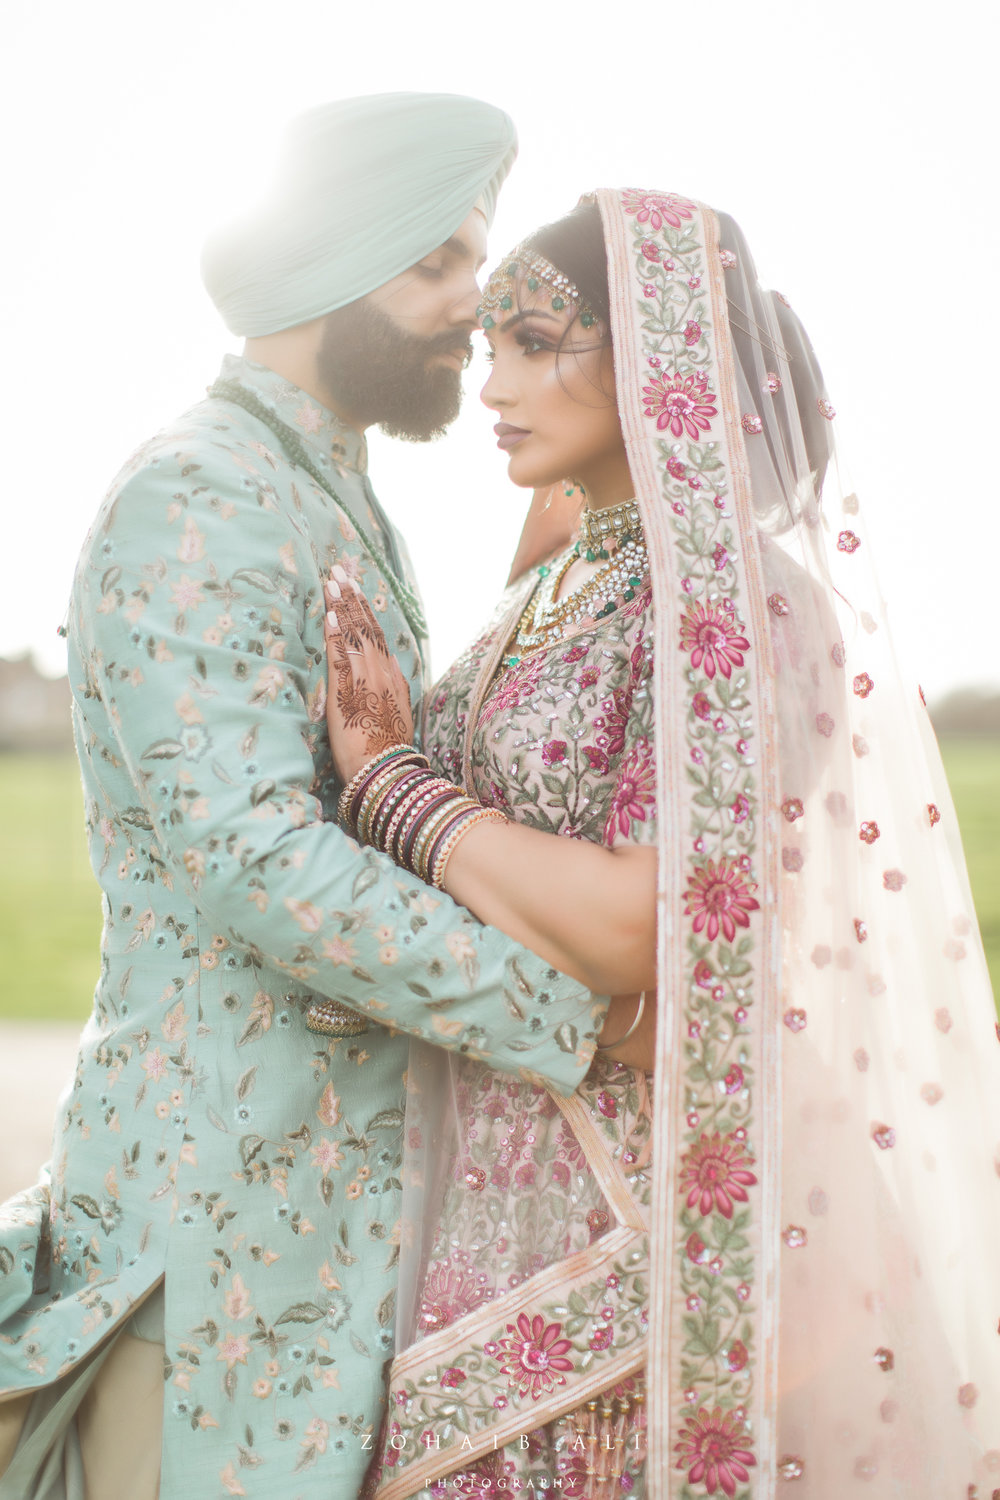 Zohaib Ali Indian Wedding Photographer.jpg